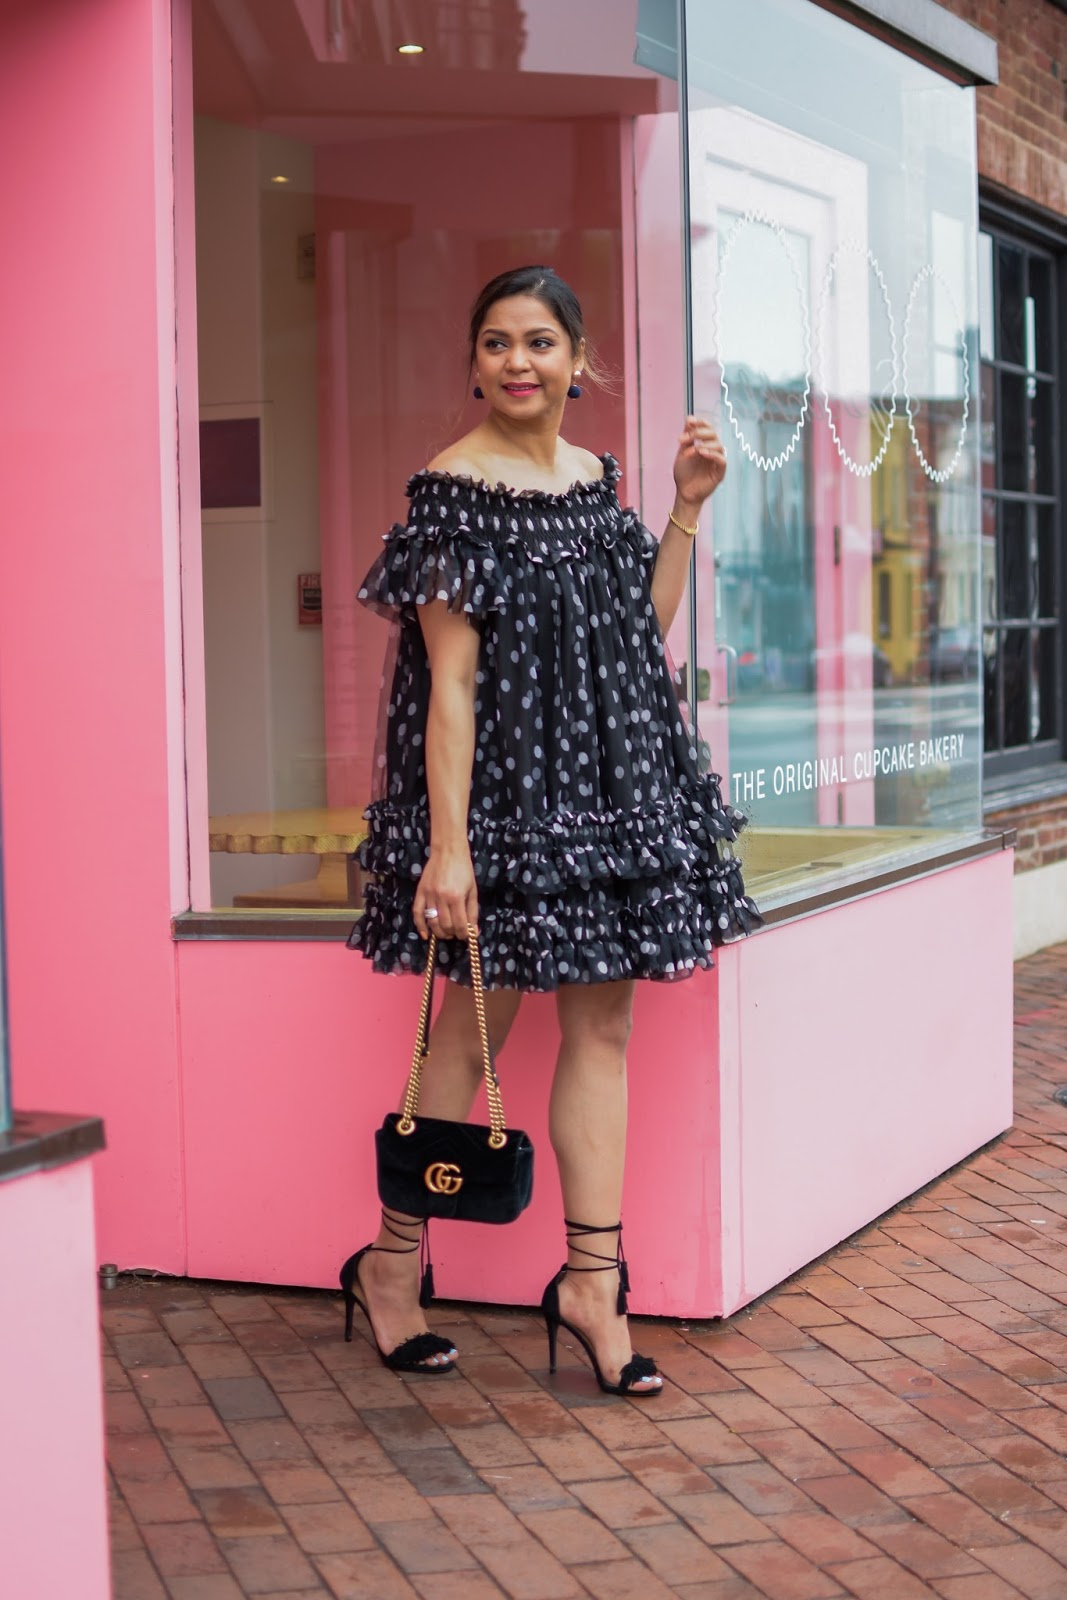 ASOS POLKA DOT SWING MESH DRESS, BLACK TULLE DRESS, STEVE MADDEN FRINGE HEELS, LACE UP HEELS PARTY TIME, WEEKEND LOOK, POLKA DOT DRESS, SPRING STYLE OFF THE SHOULDER DRESS , Myriad musings